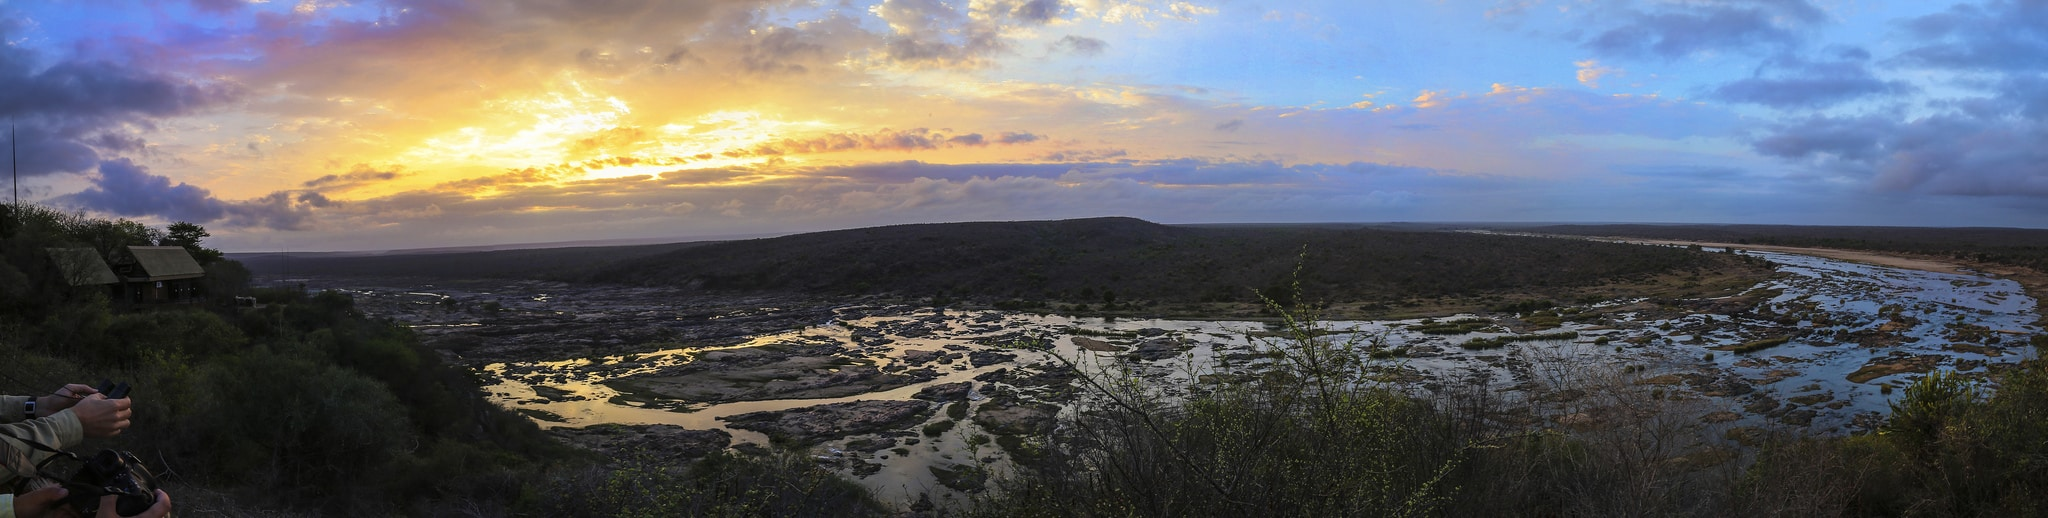 View from Olifants restcamp, sheldrickfalls